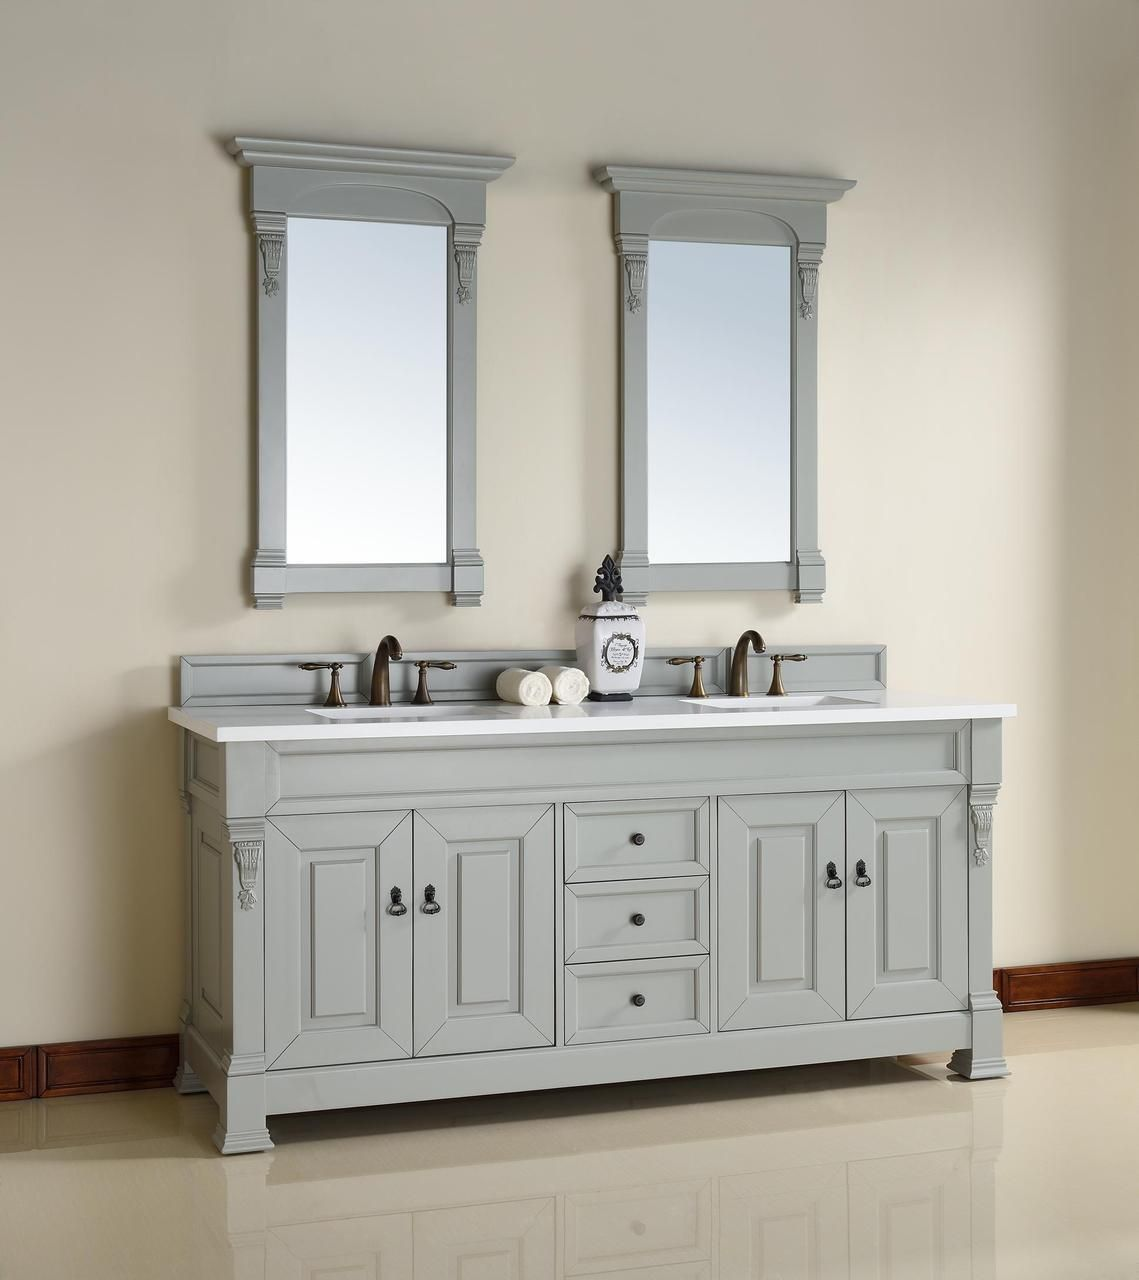 72 inch urban grey double bathroom vanity optional countertops rh pinterest com